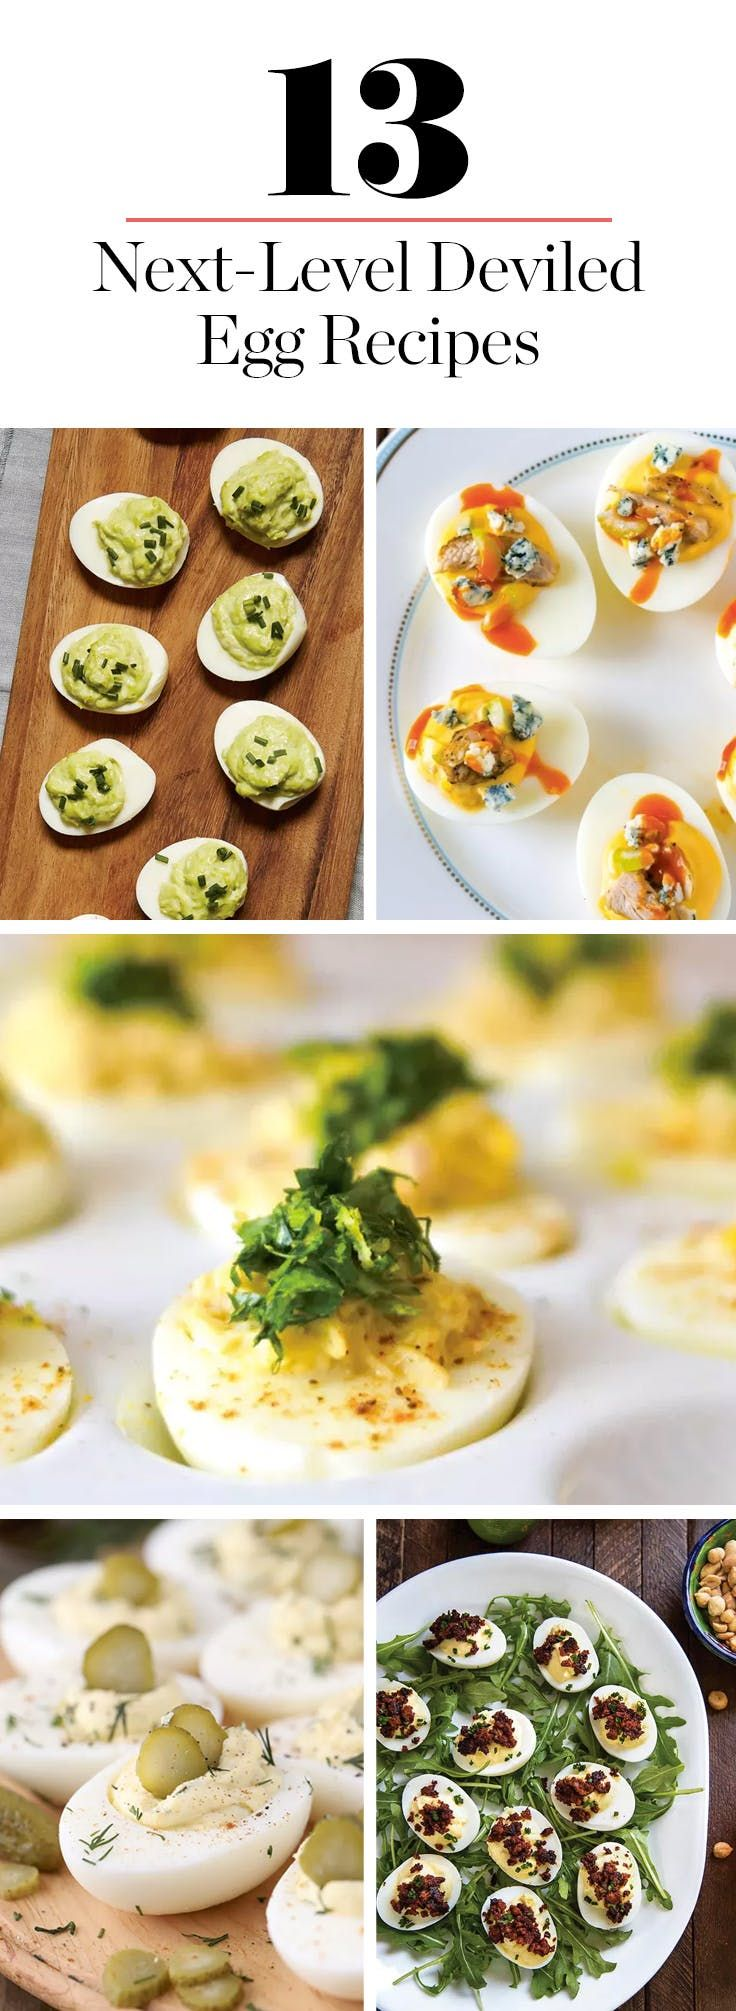 13 next level deviled egg recipes to try devil egg and recipes 13 next level deviled egg recipes to try forumfinder Gallery